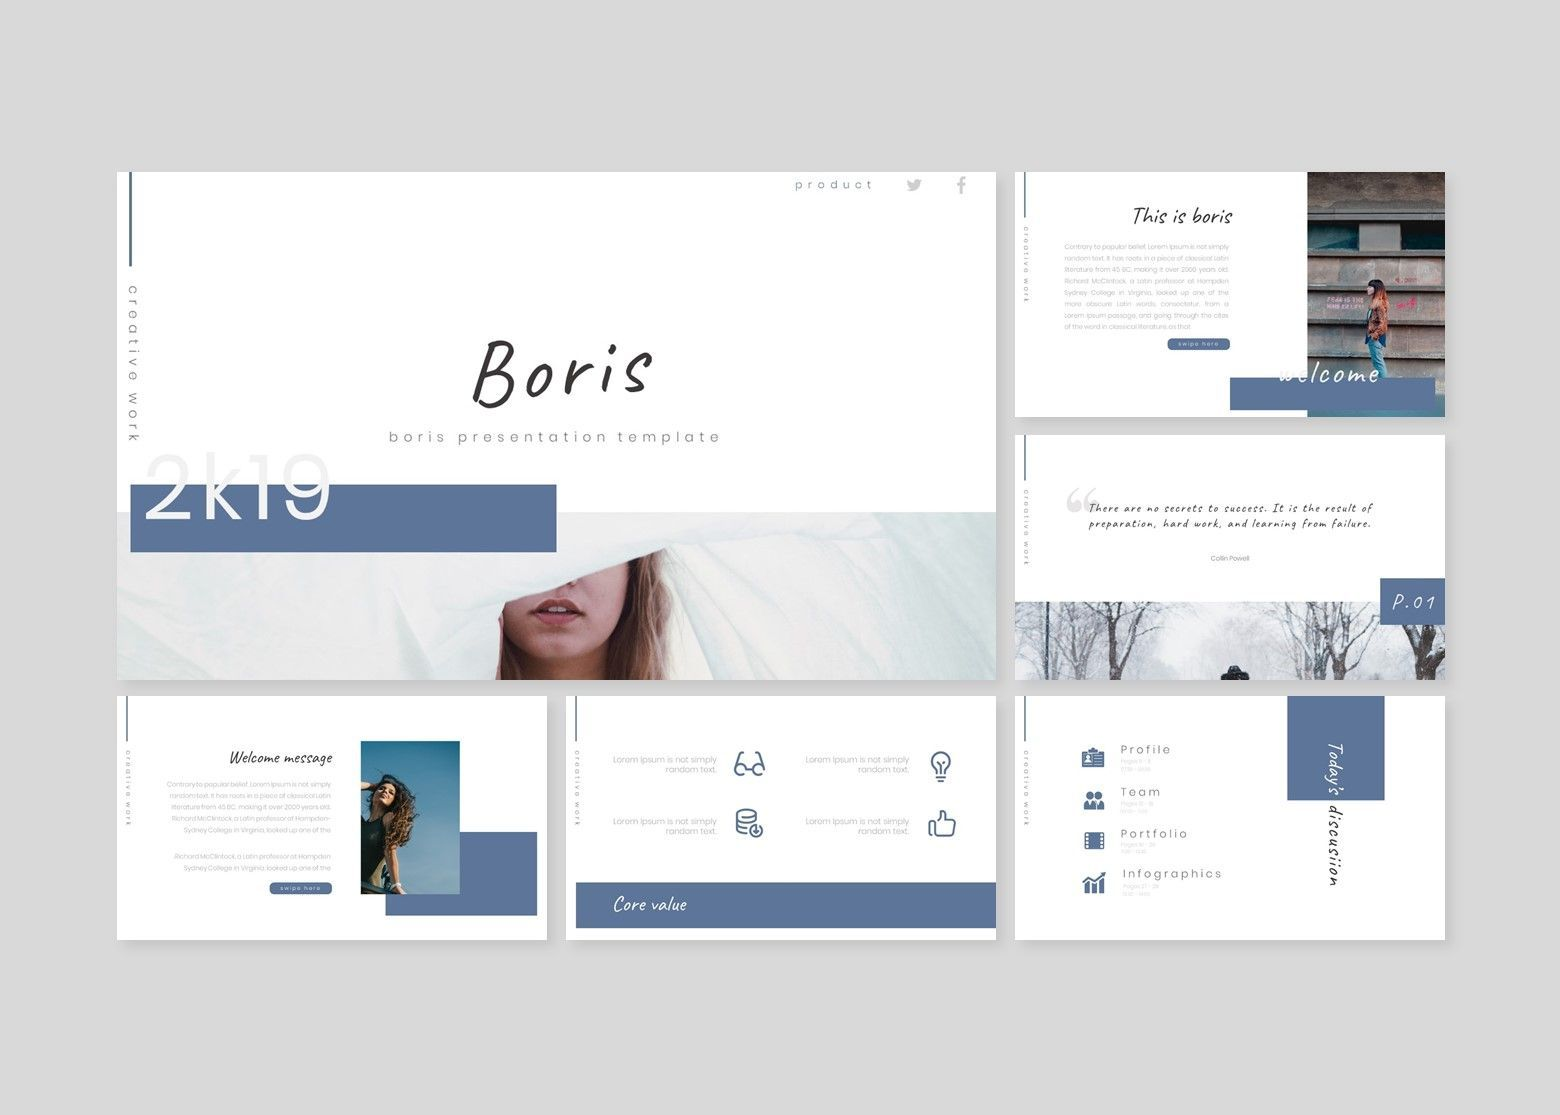 Boris - Google Slides Template, Slide 2, 07700, Presentation Templates — PoweredTemplate.com